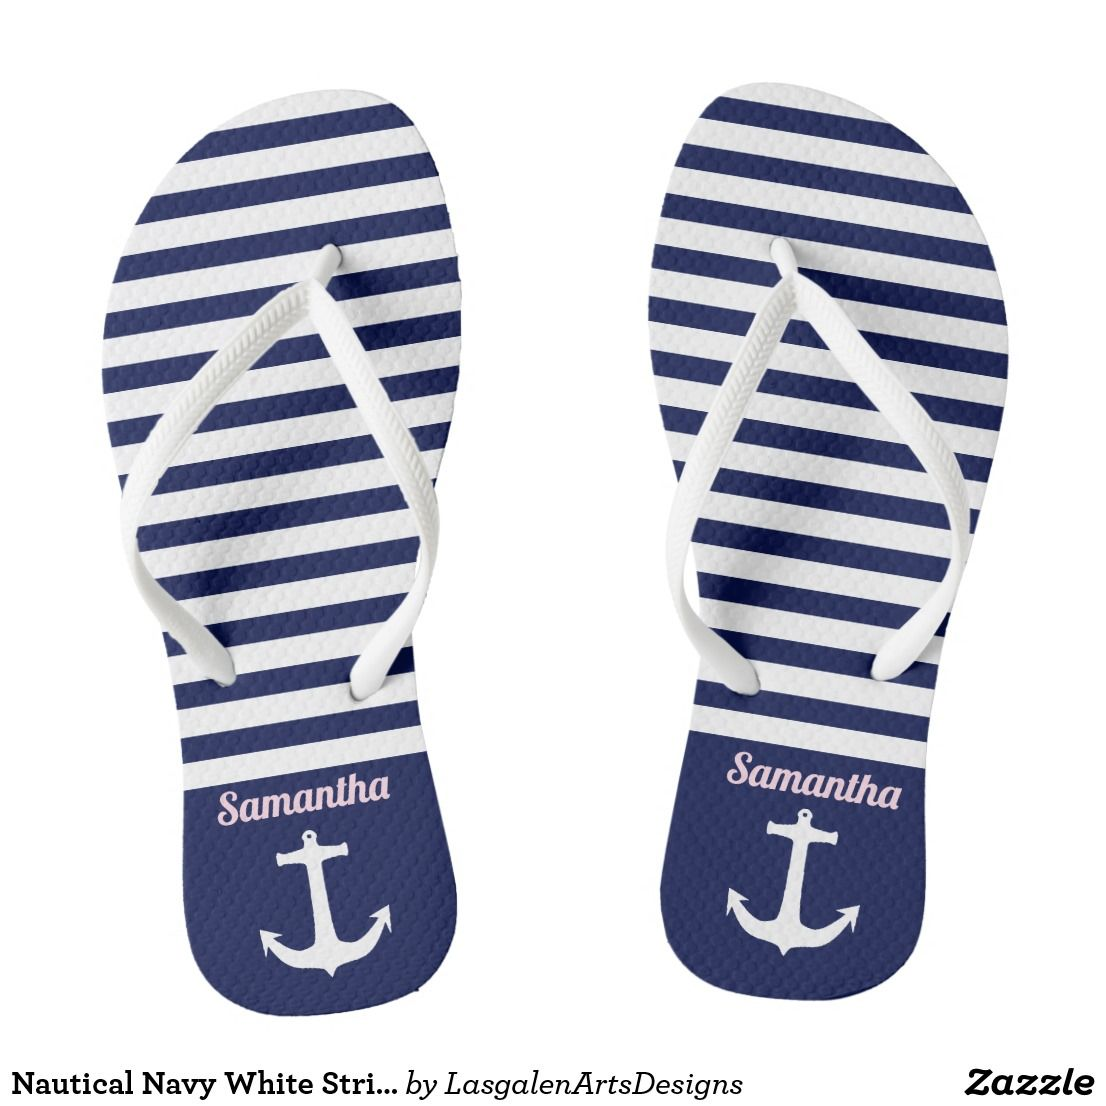 61fb4da54259 Nautical Navy White Stripes Anchor Flip Flops For The Beach. For the sea or  just around town these fun nautical designed flip flops are perfect.